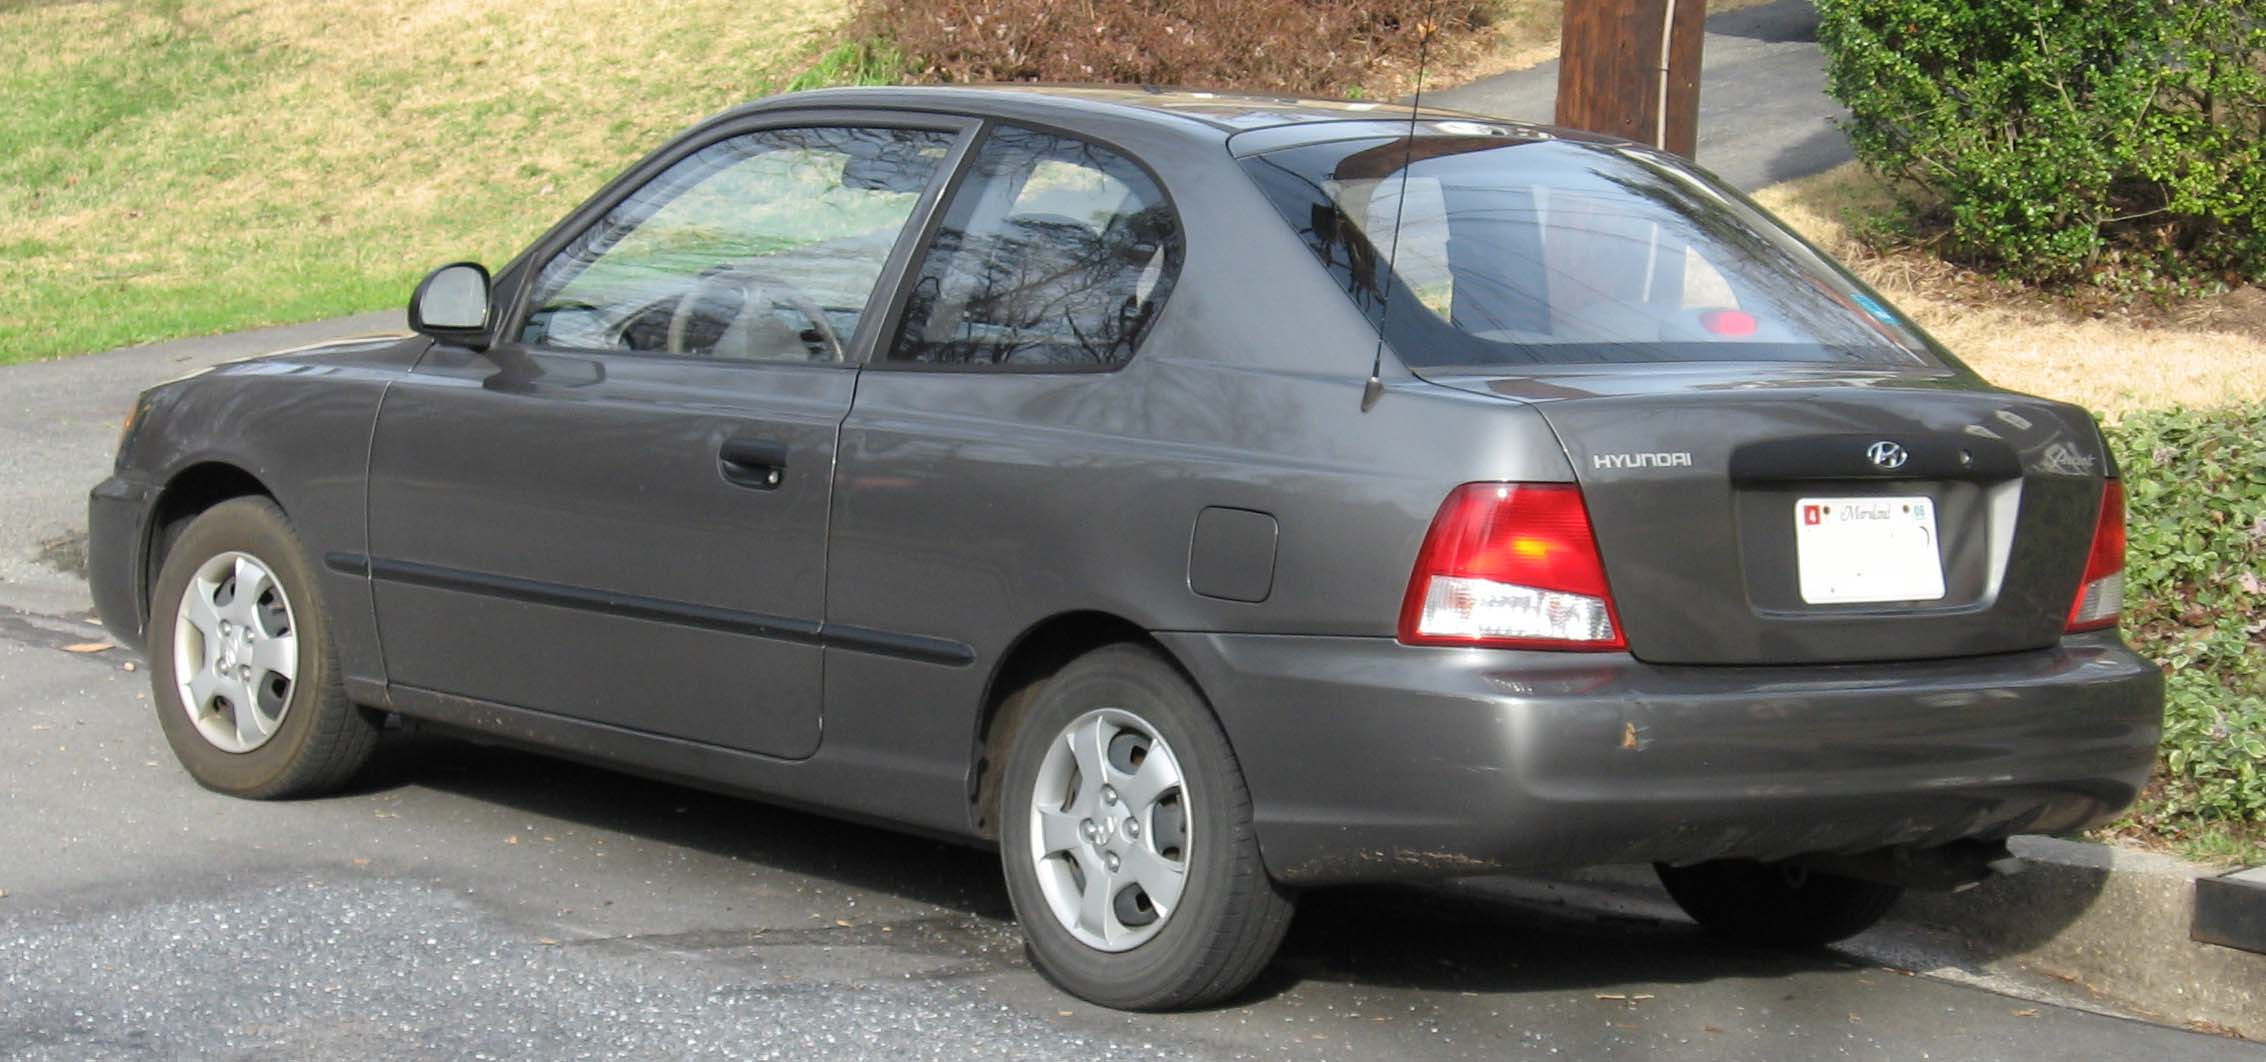 File:00-02 Hyundai Accent hatch 2.jpg - Wikimedia Commons